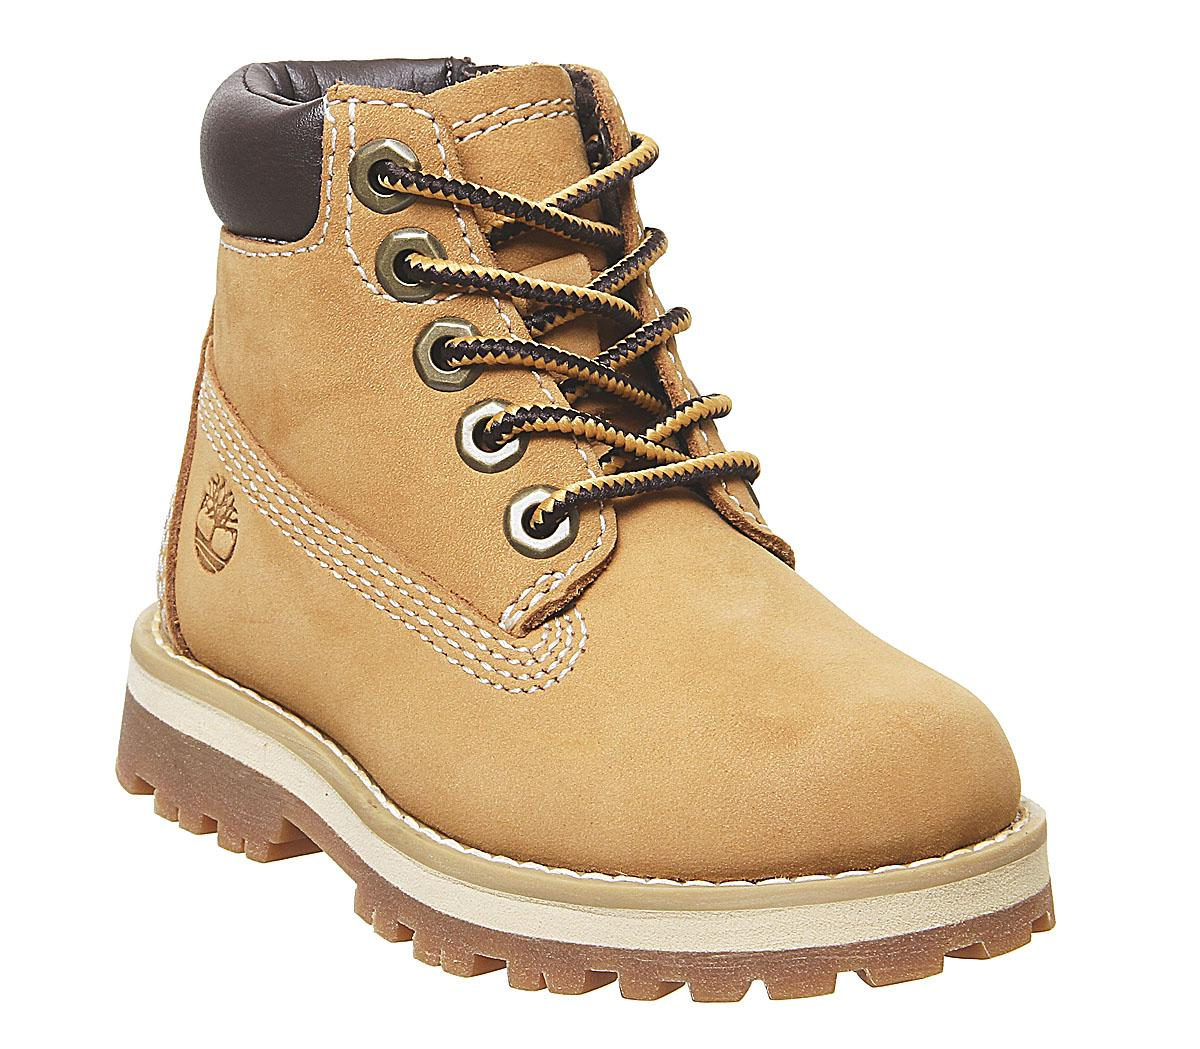 Timberland Courma 6 Inch Infant Boots